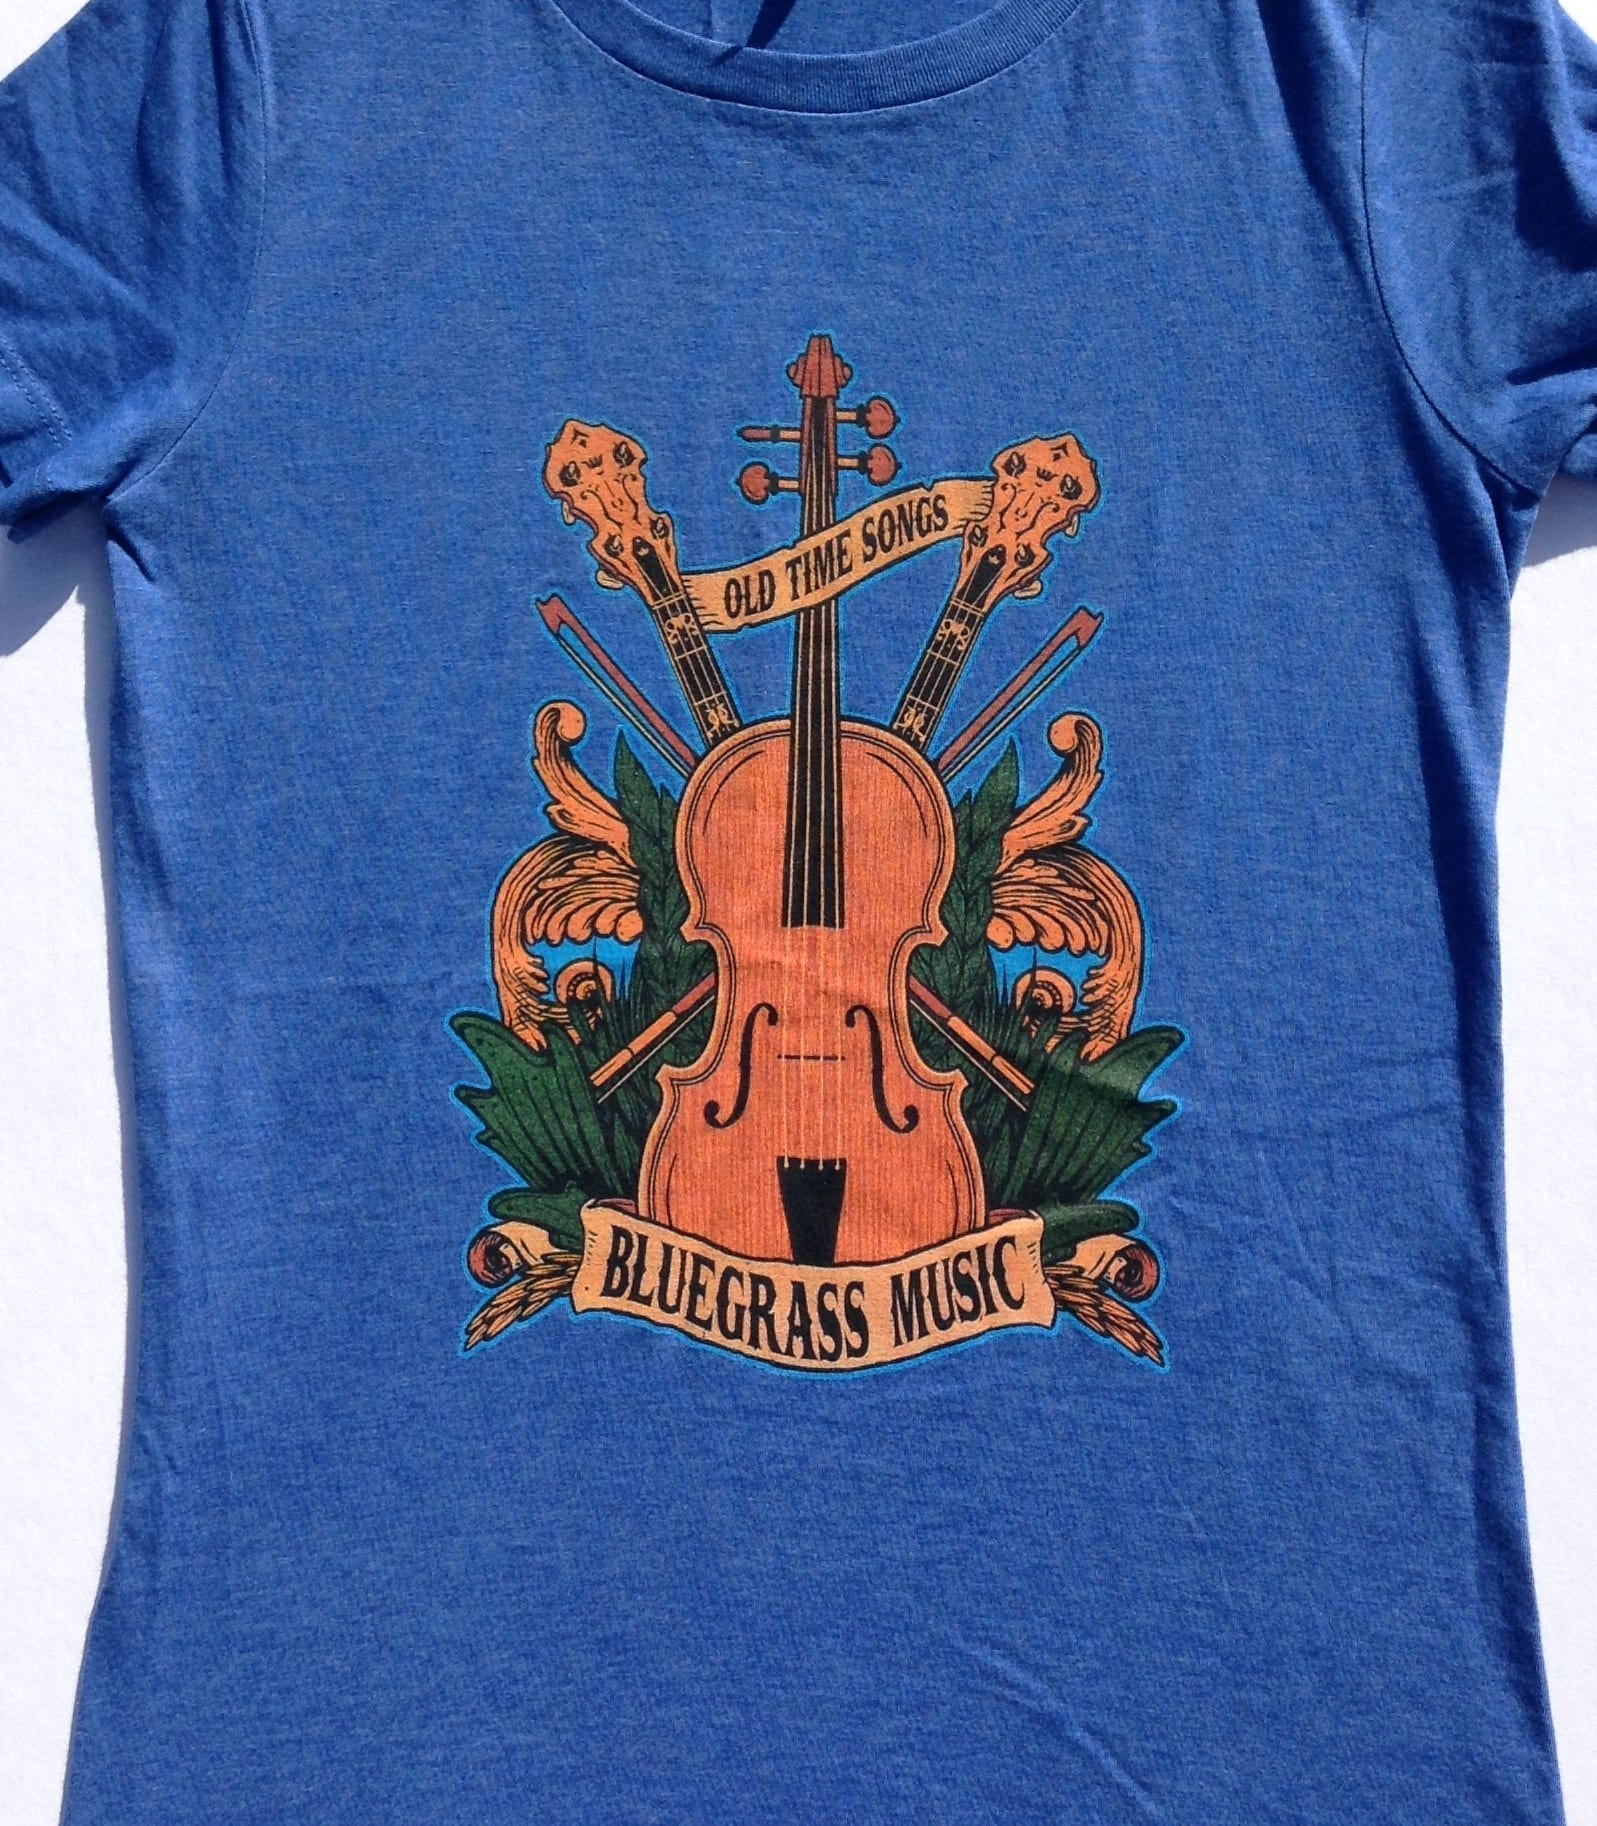 70db48b5 LADIES Bluegrass fan Old Time Songs blue fitted tee shirt - country ...